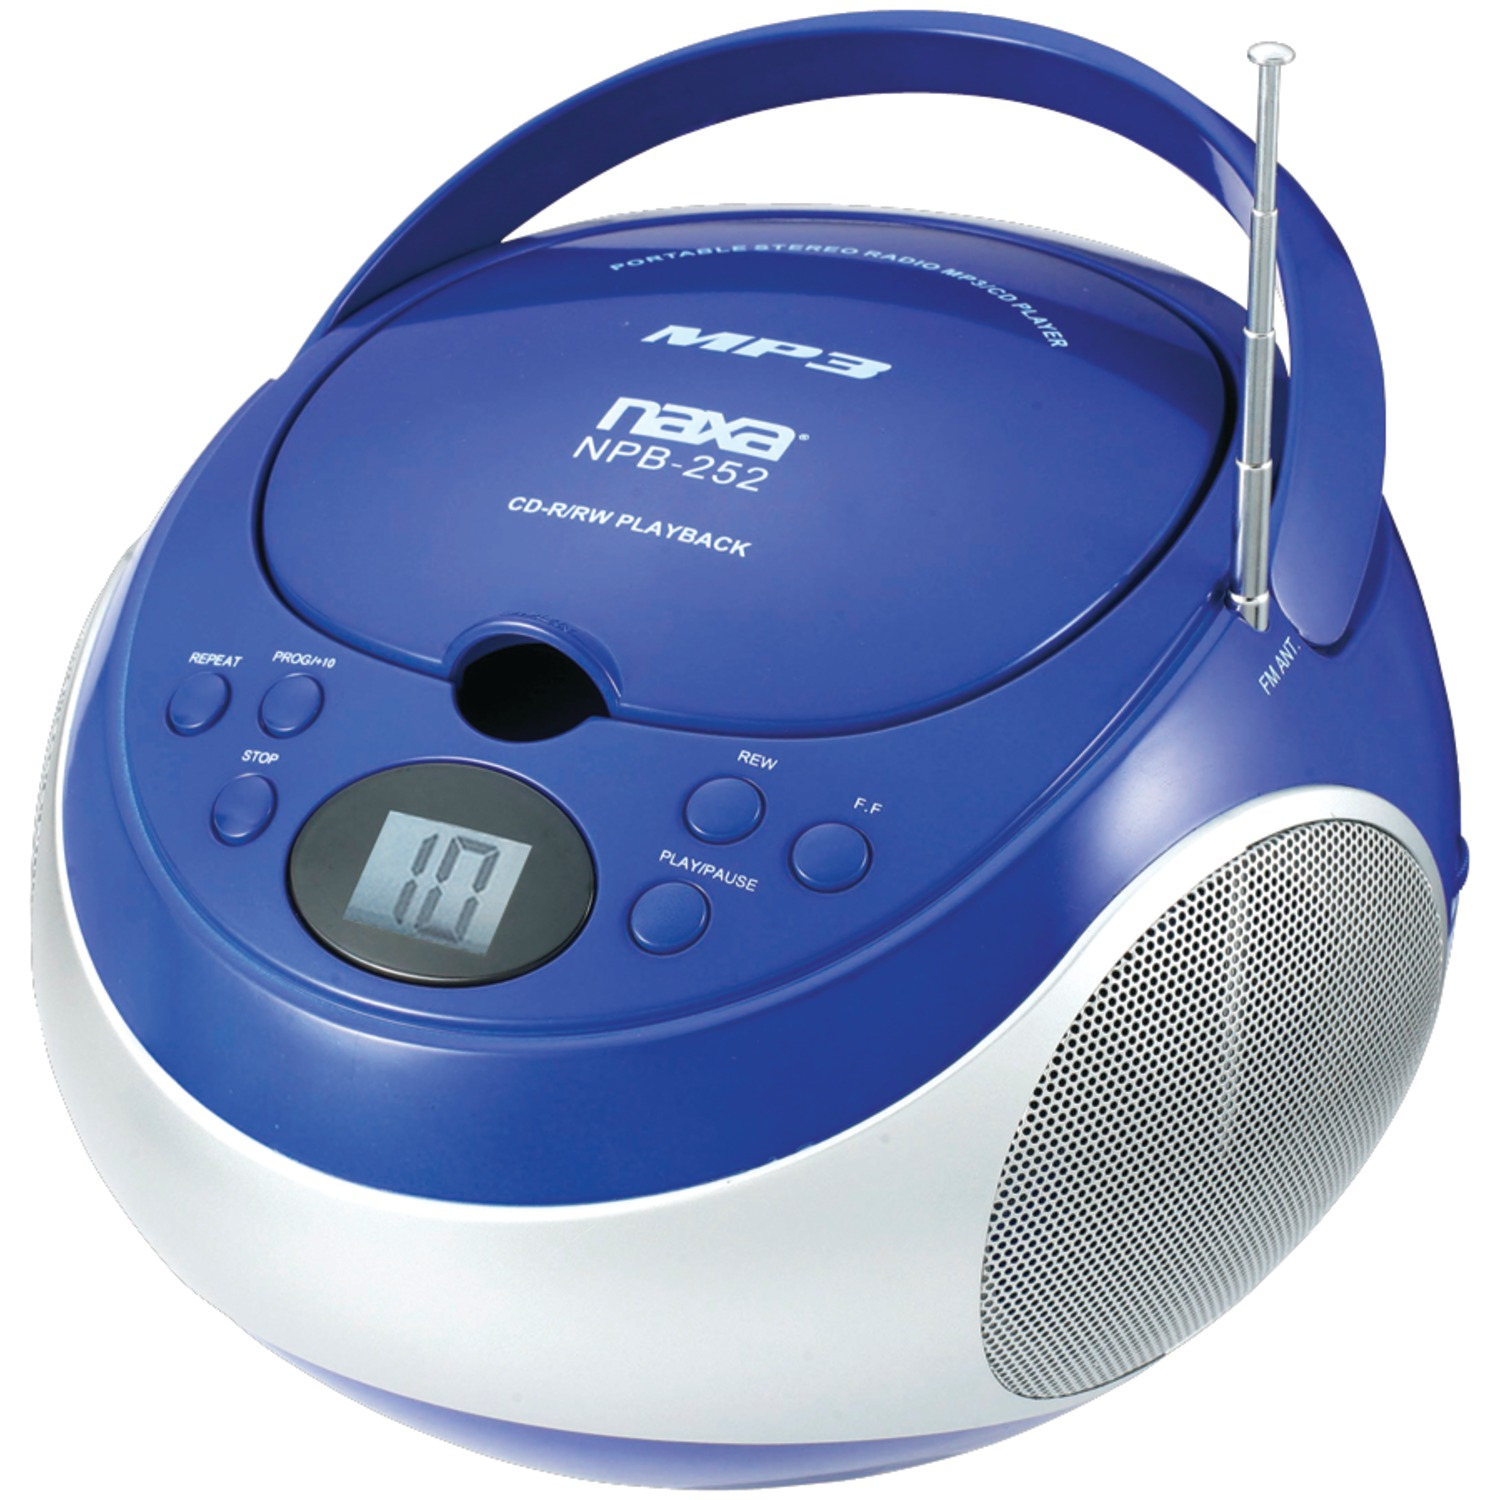 Naxa NPB252BL Portable CD/MP3 Players with AM/FM Stereo (Blue)